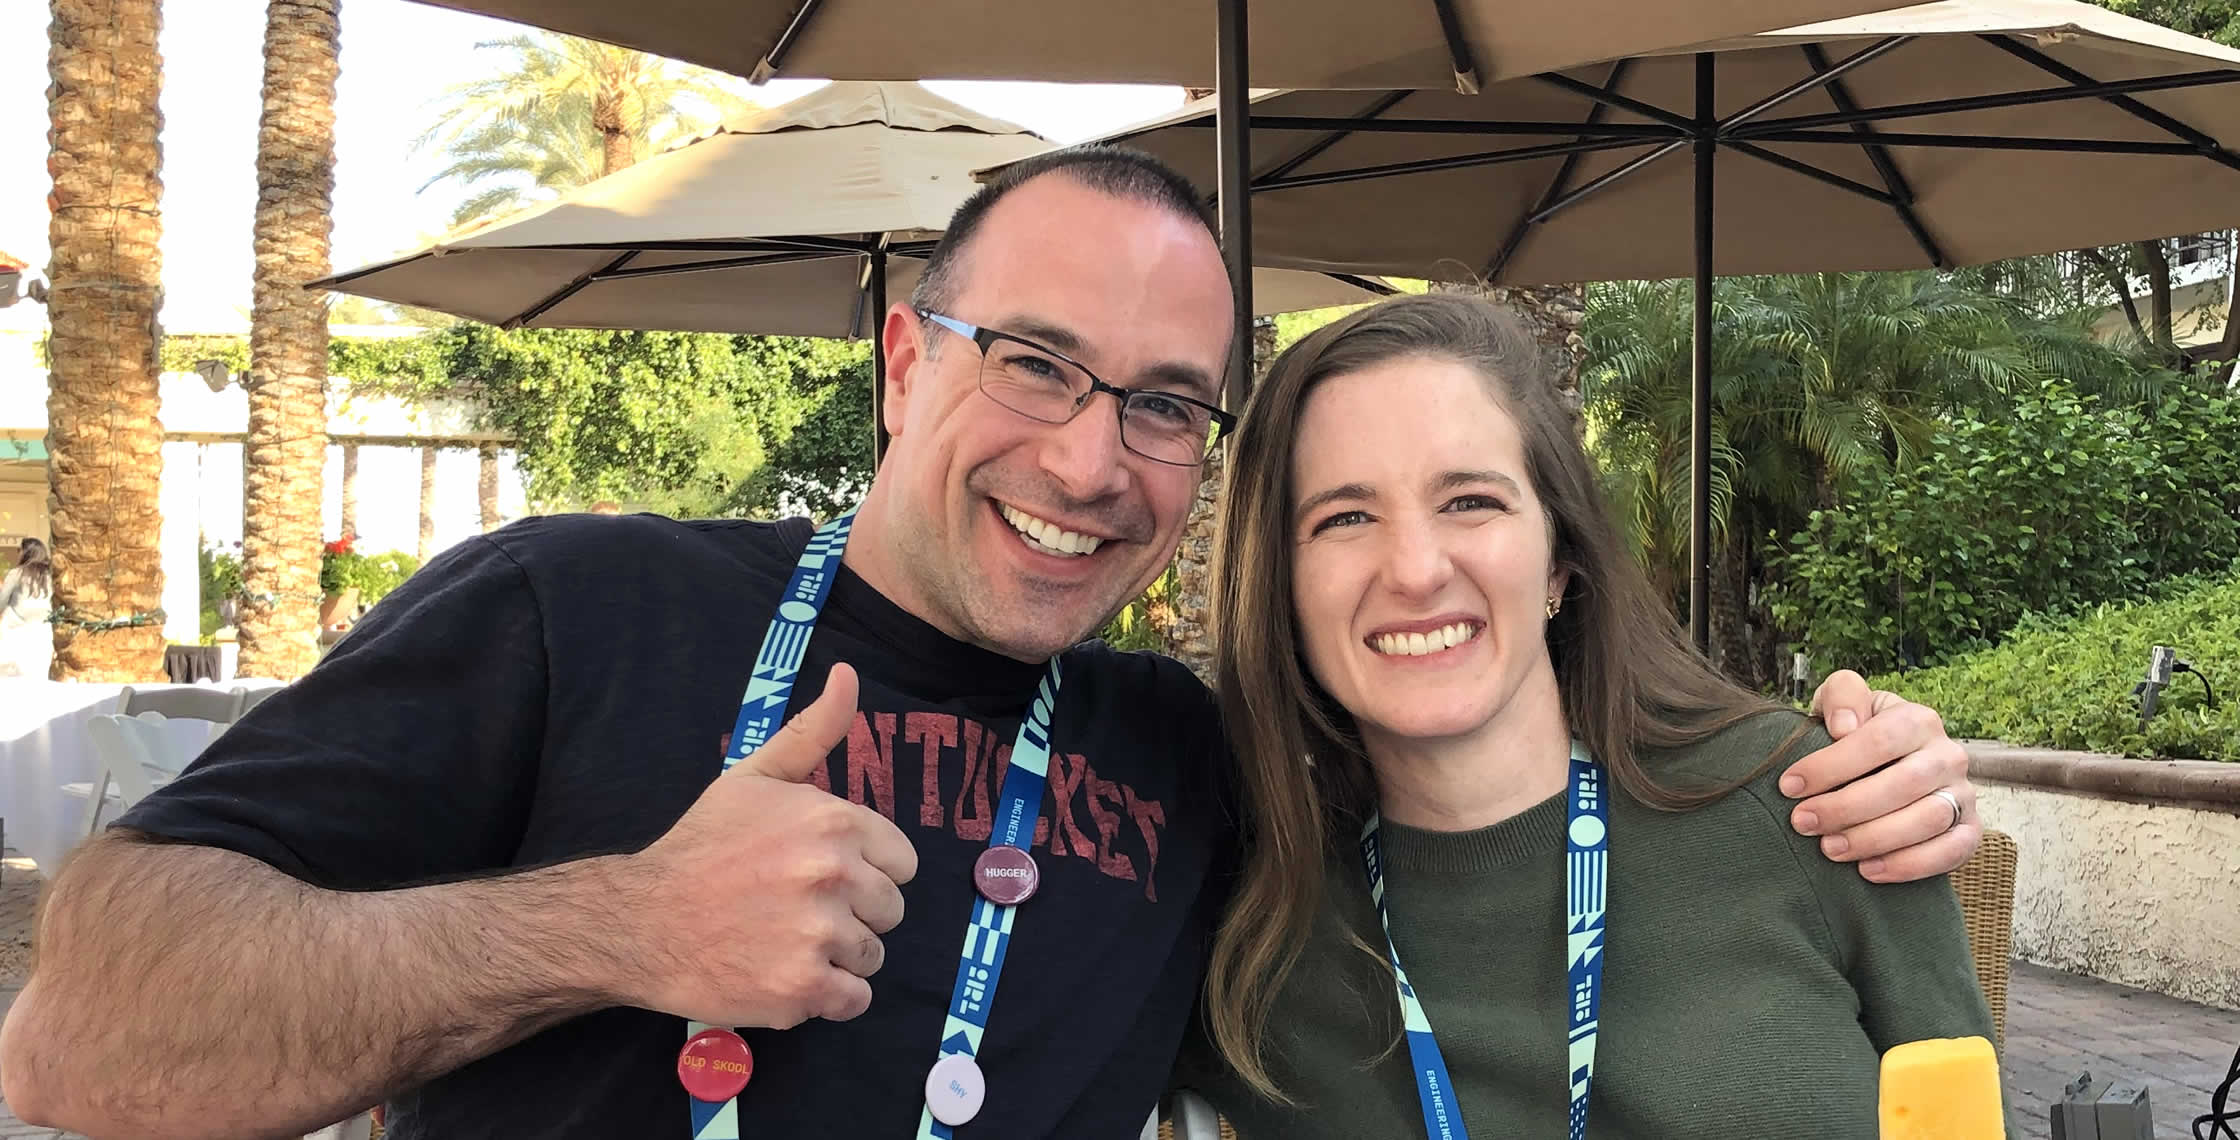 Ben Nadel at InVision In Real Life (IRL) 2019 (Phoenix, AZ) with: Keeley Hammond